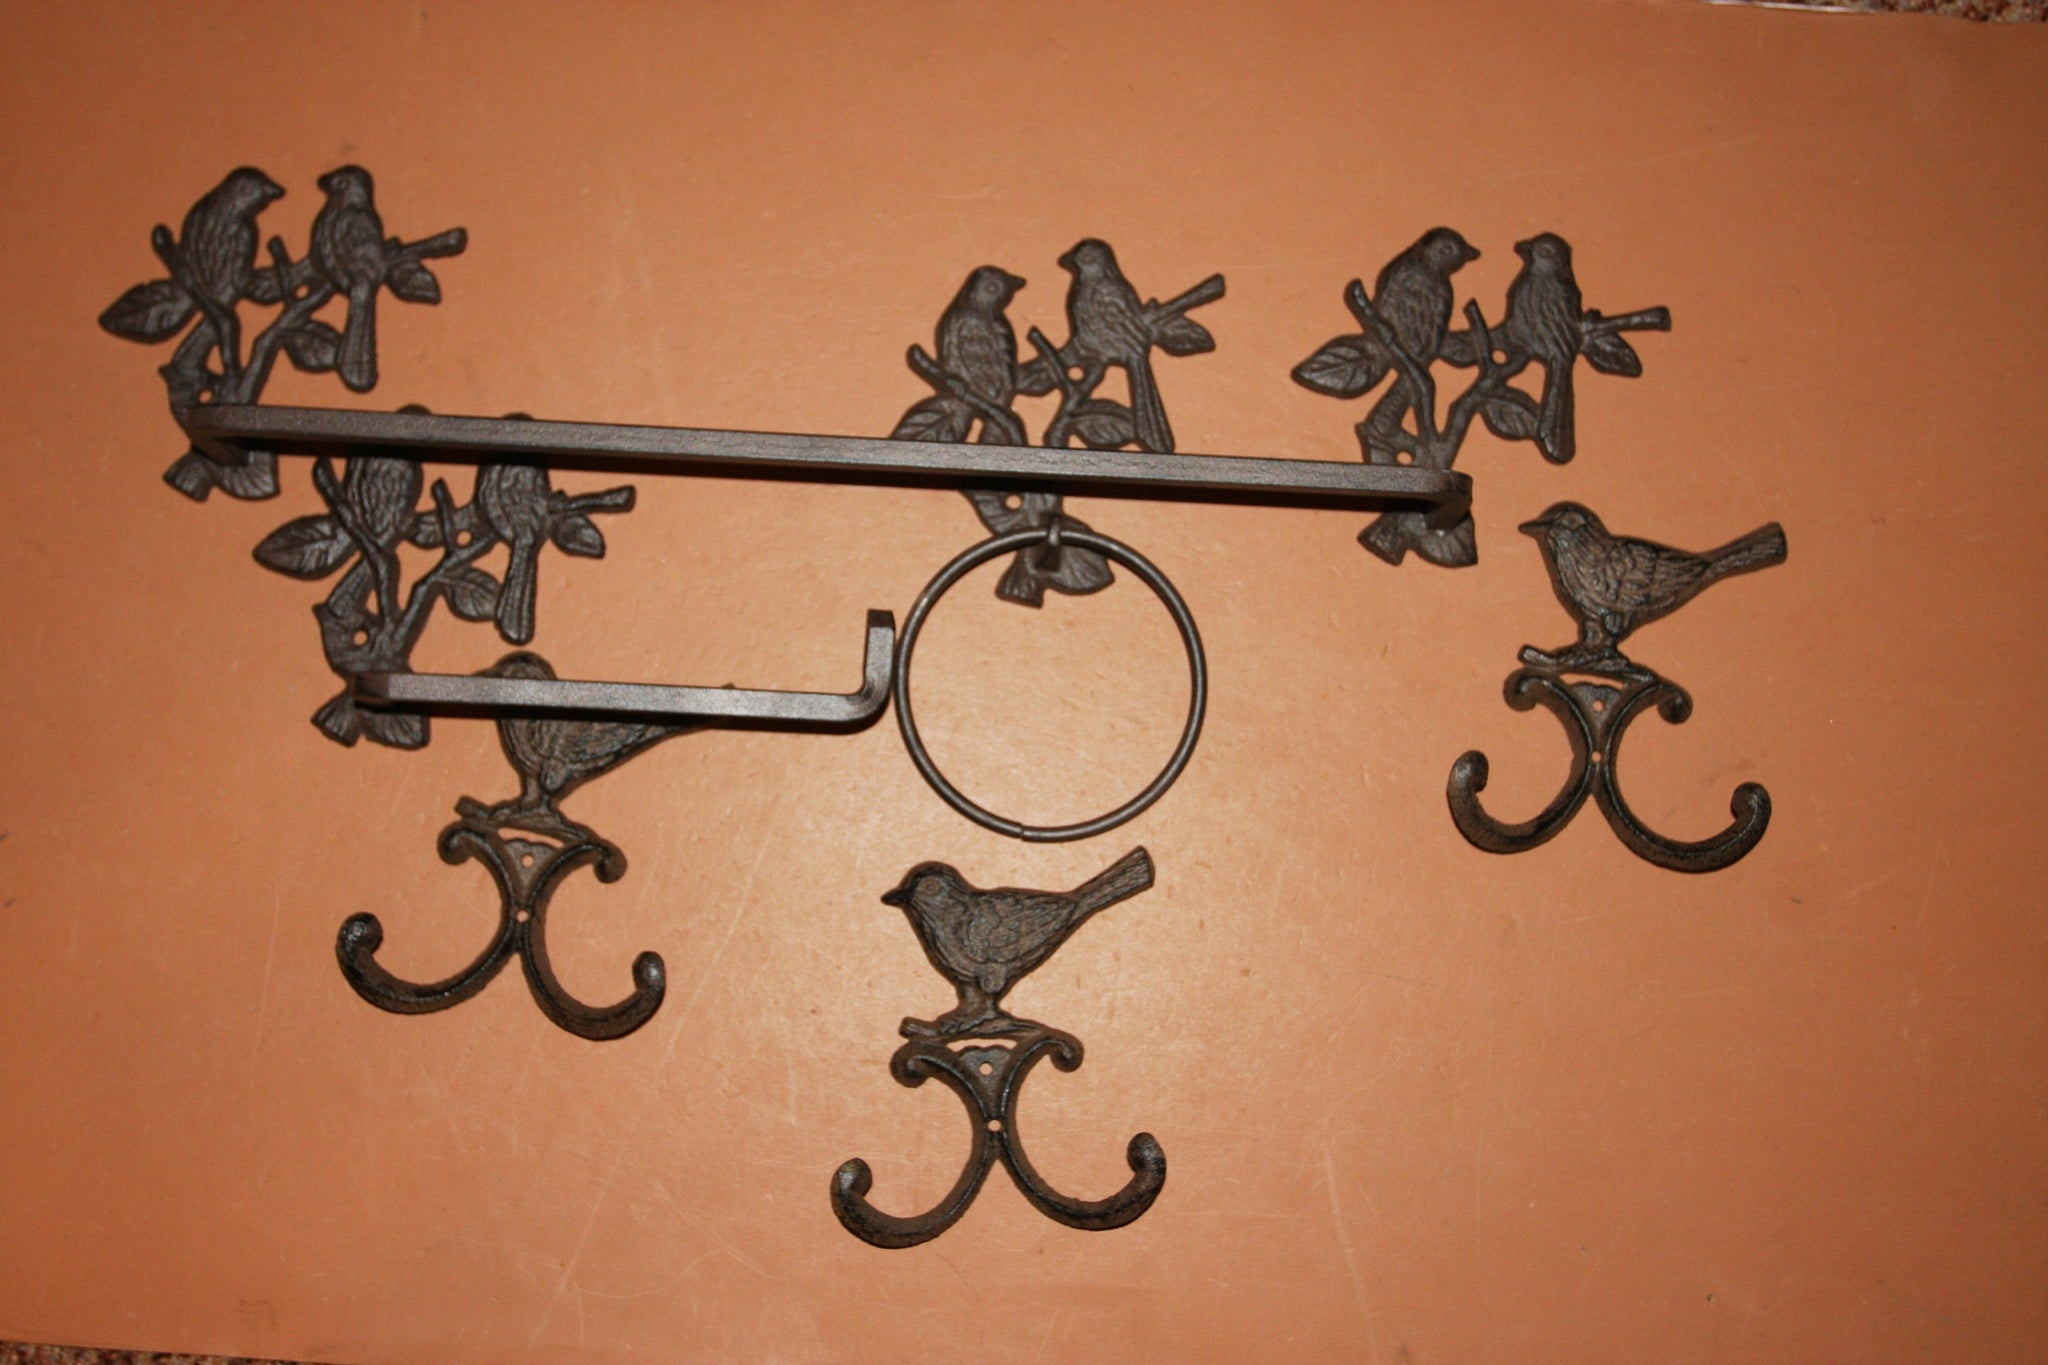 6) Cast Iron Wild bird bathroom accesories hardware, towel rack, towel hooks, toilet paper holder